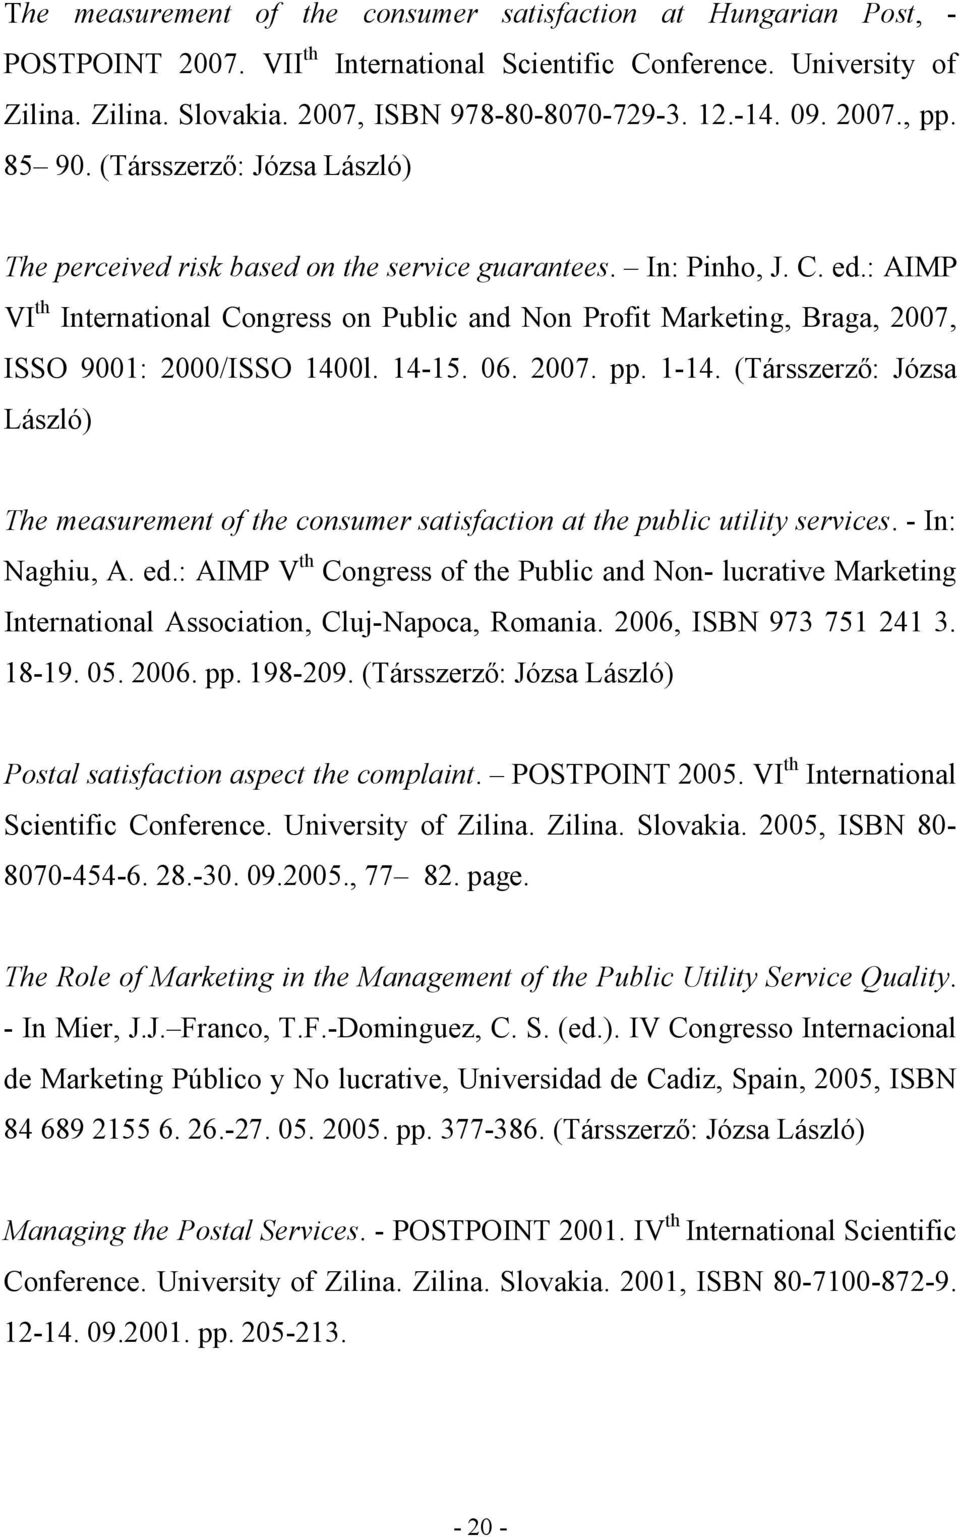 : AIMP VI th International Congress on Public and Non Profit Marketing, Braga, 2007, ISSO 9001: 2000/ISSO 1400l. 14-15. 06. 2007. pp. 1-14.